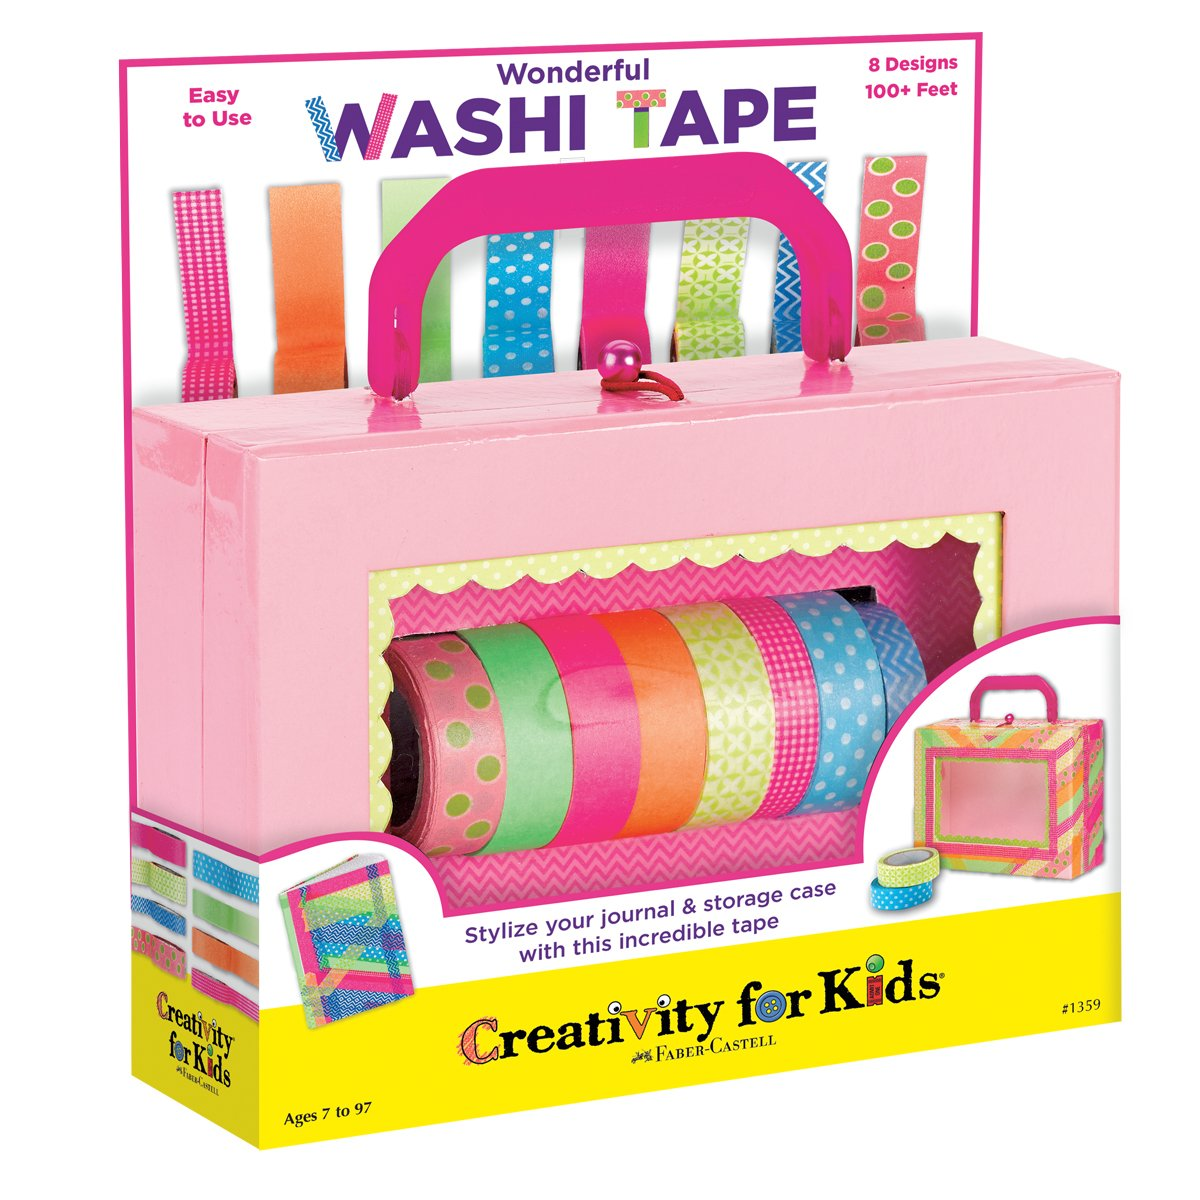 Creativity for Kids - Wonderful Washi Tape Faber-Castell 1359000